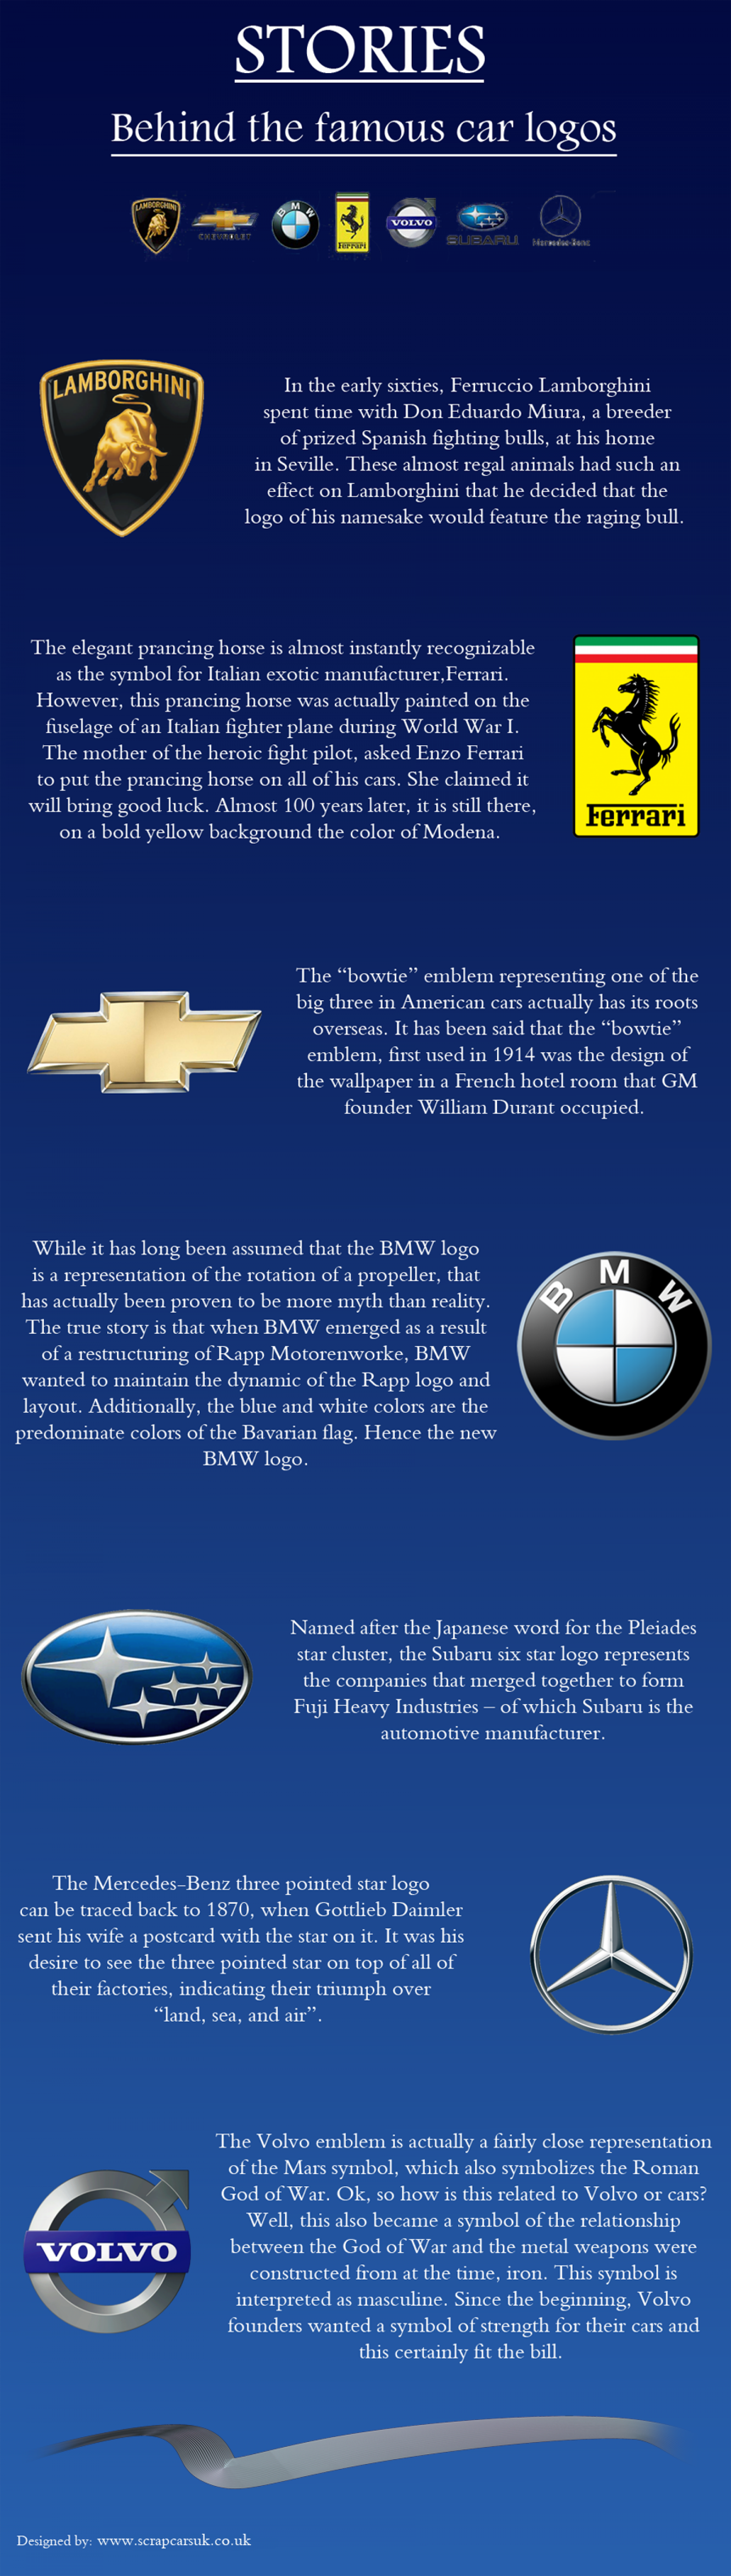 Stories behind the famous car logos  Infographic